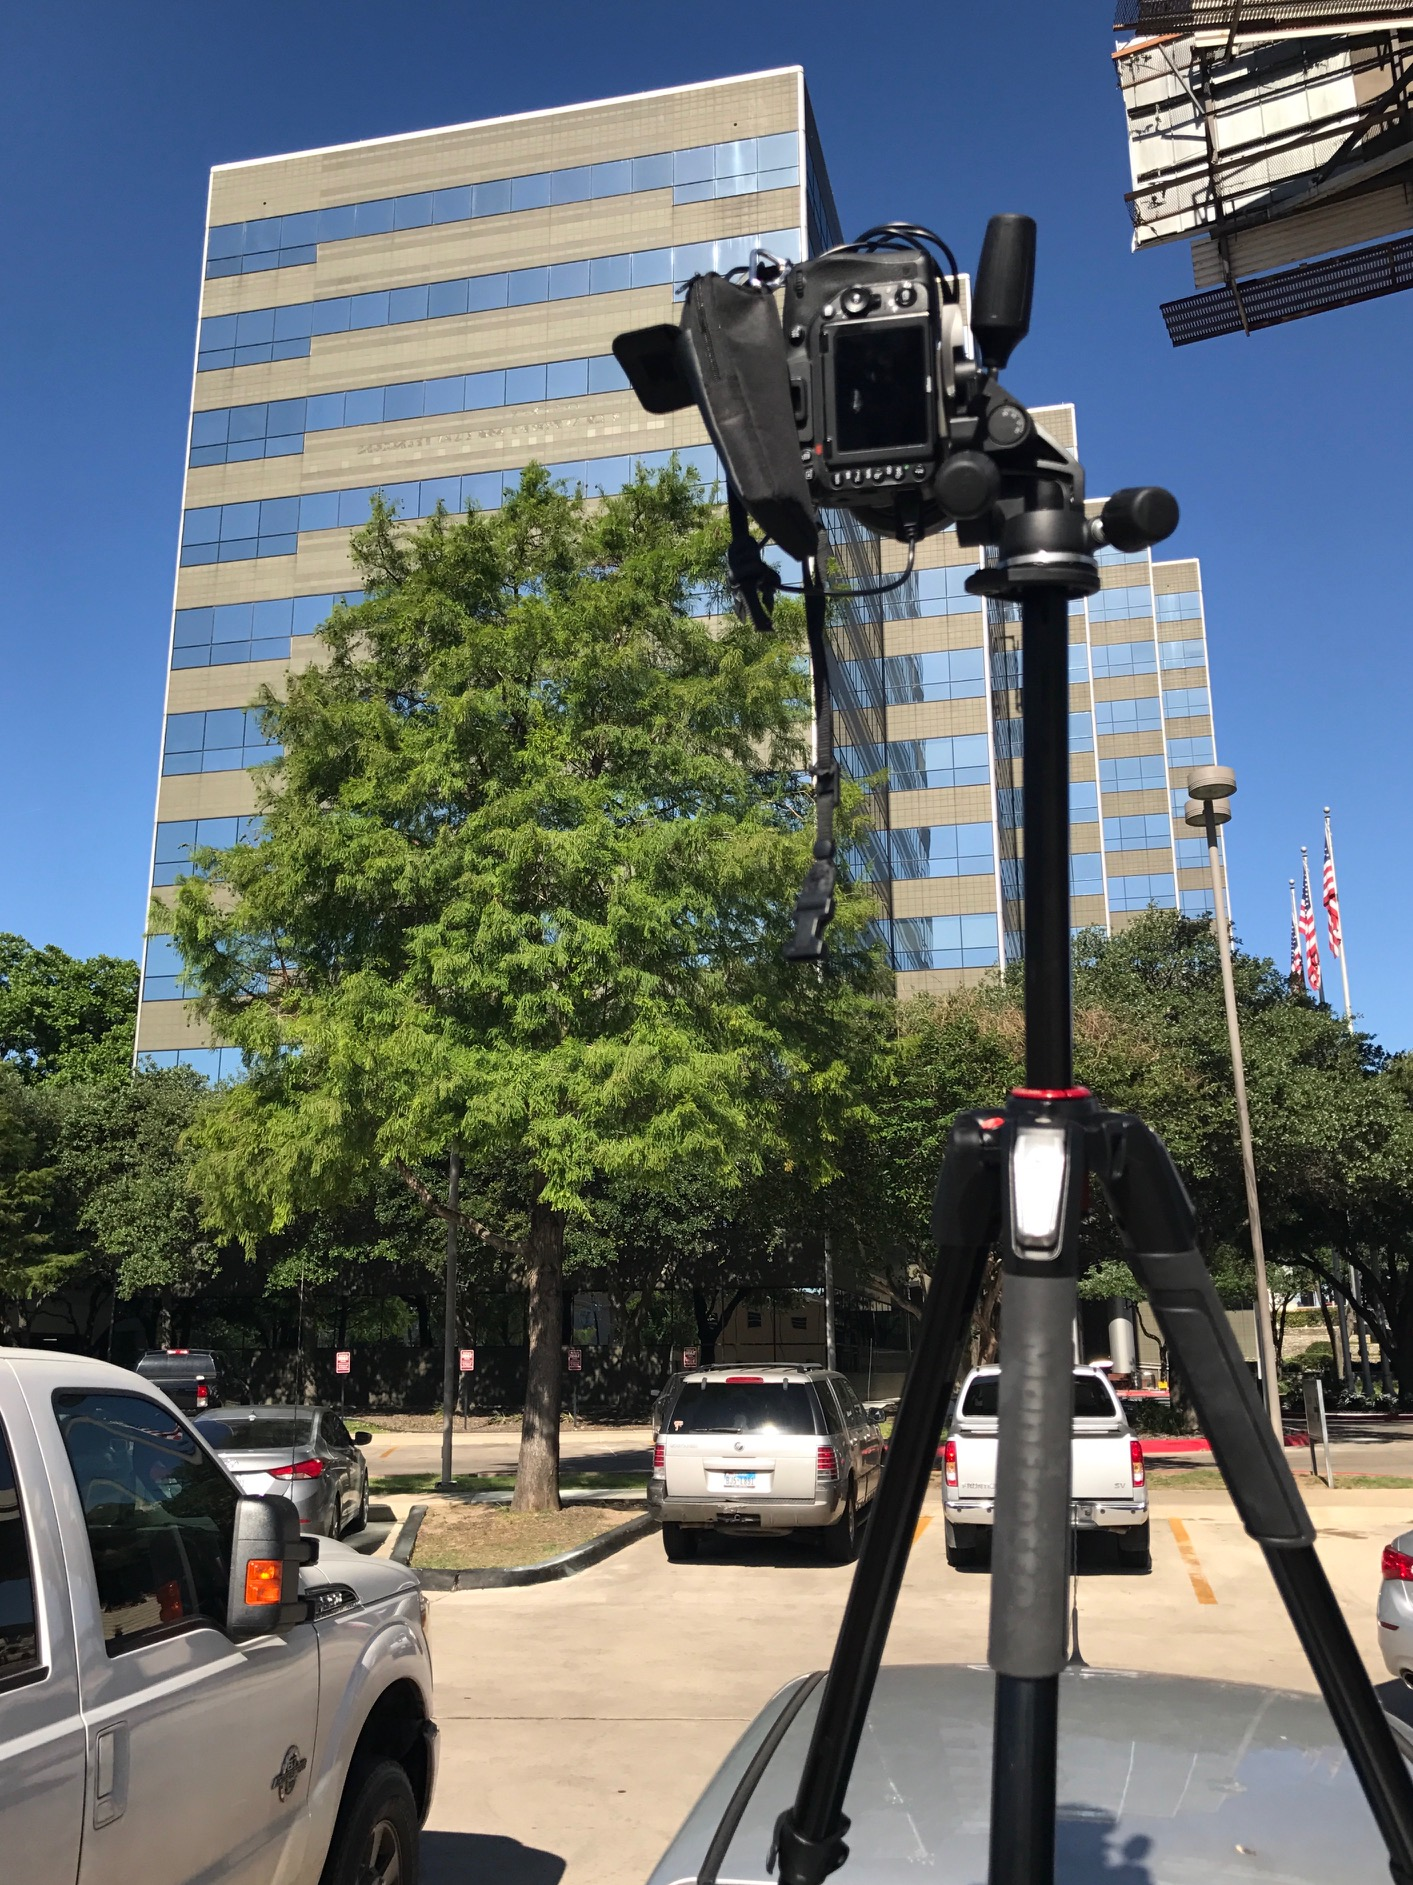 a snapshot of a camera on a tripod which is on top of a car, pointed at a building